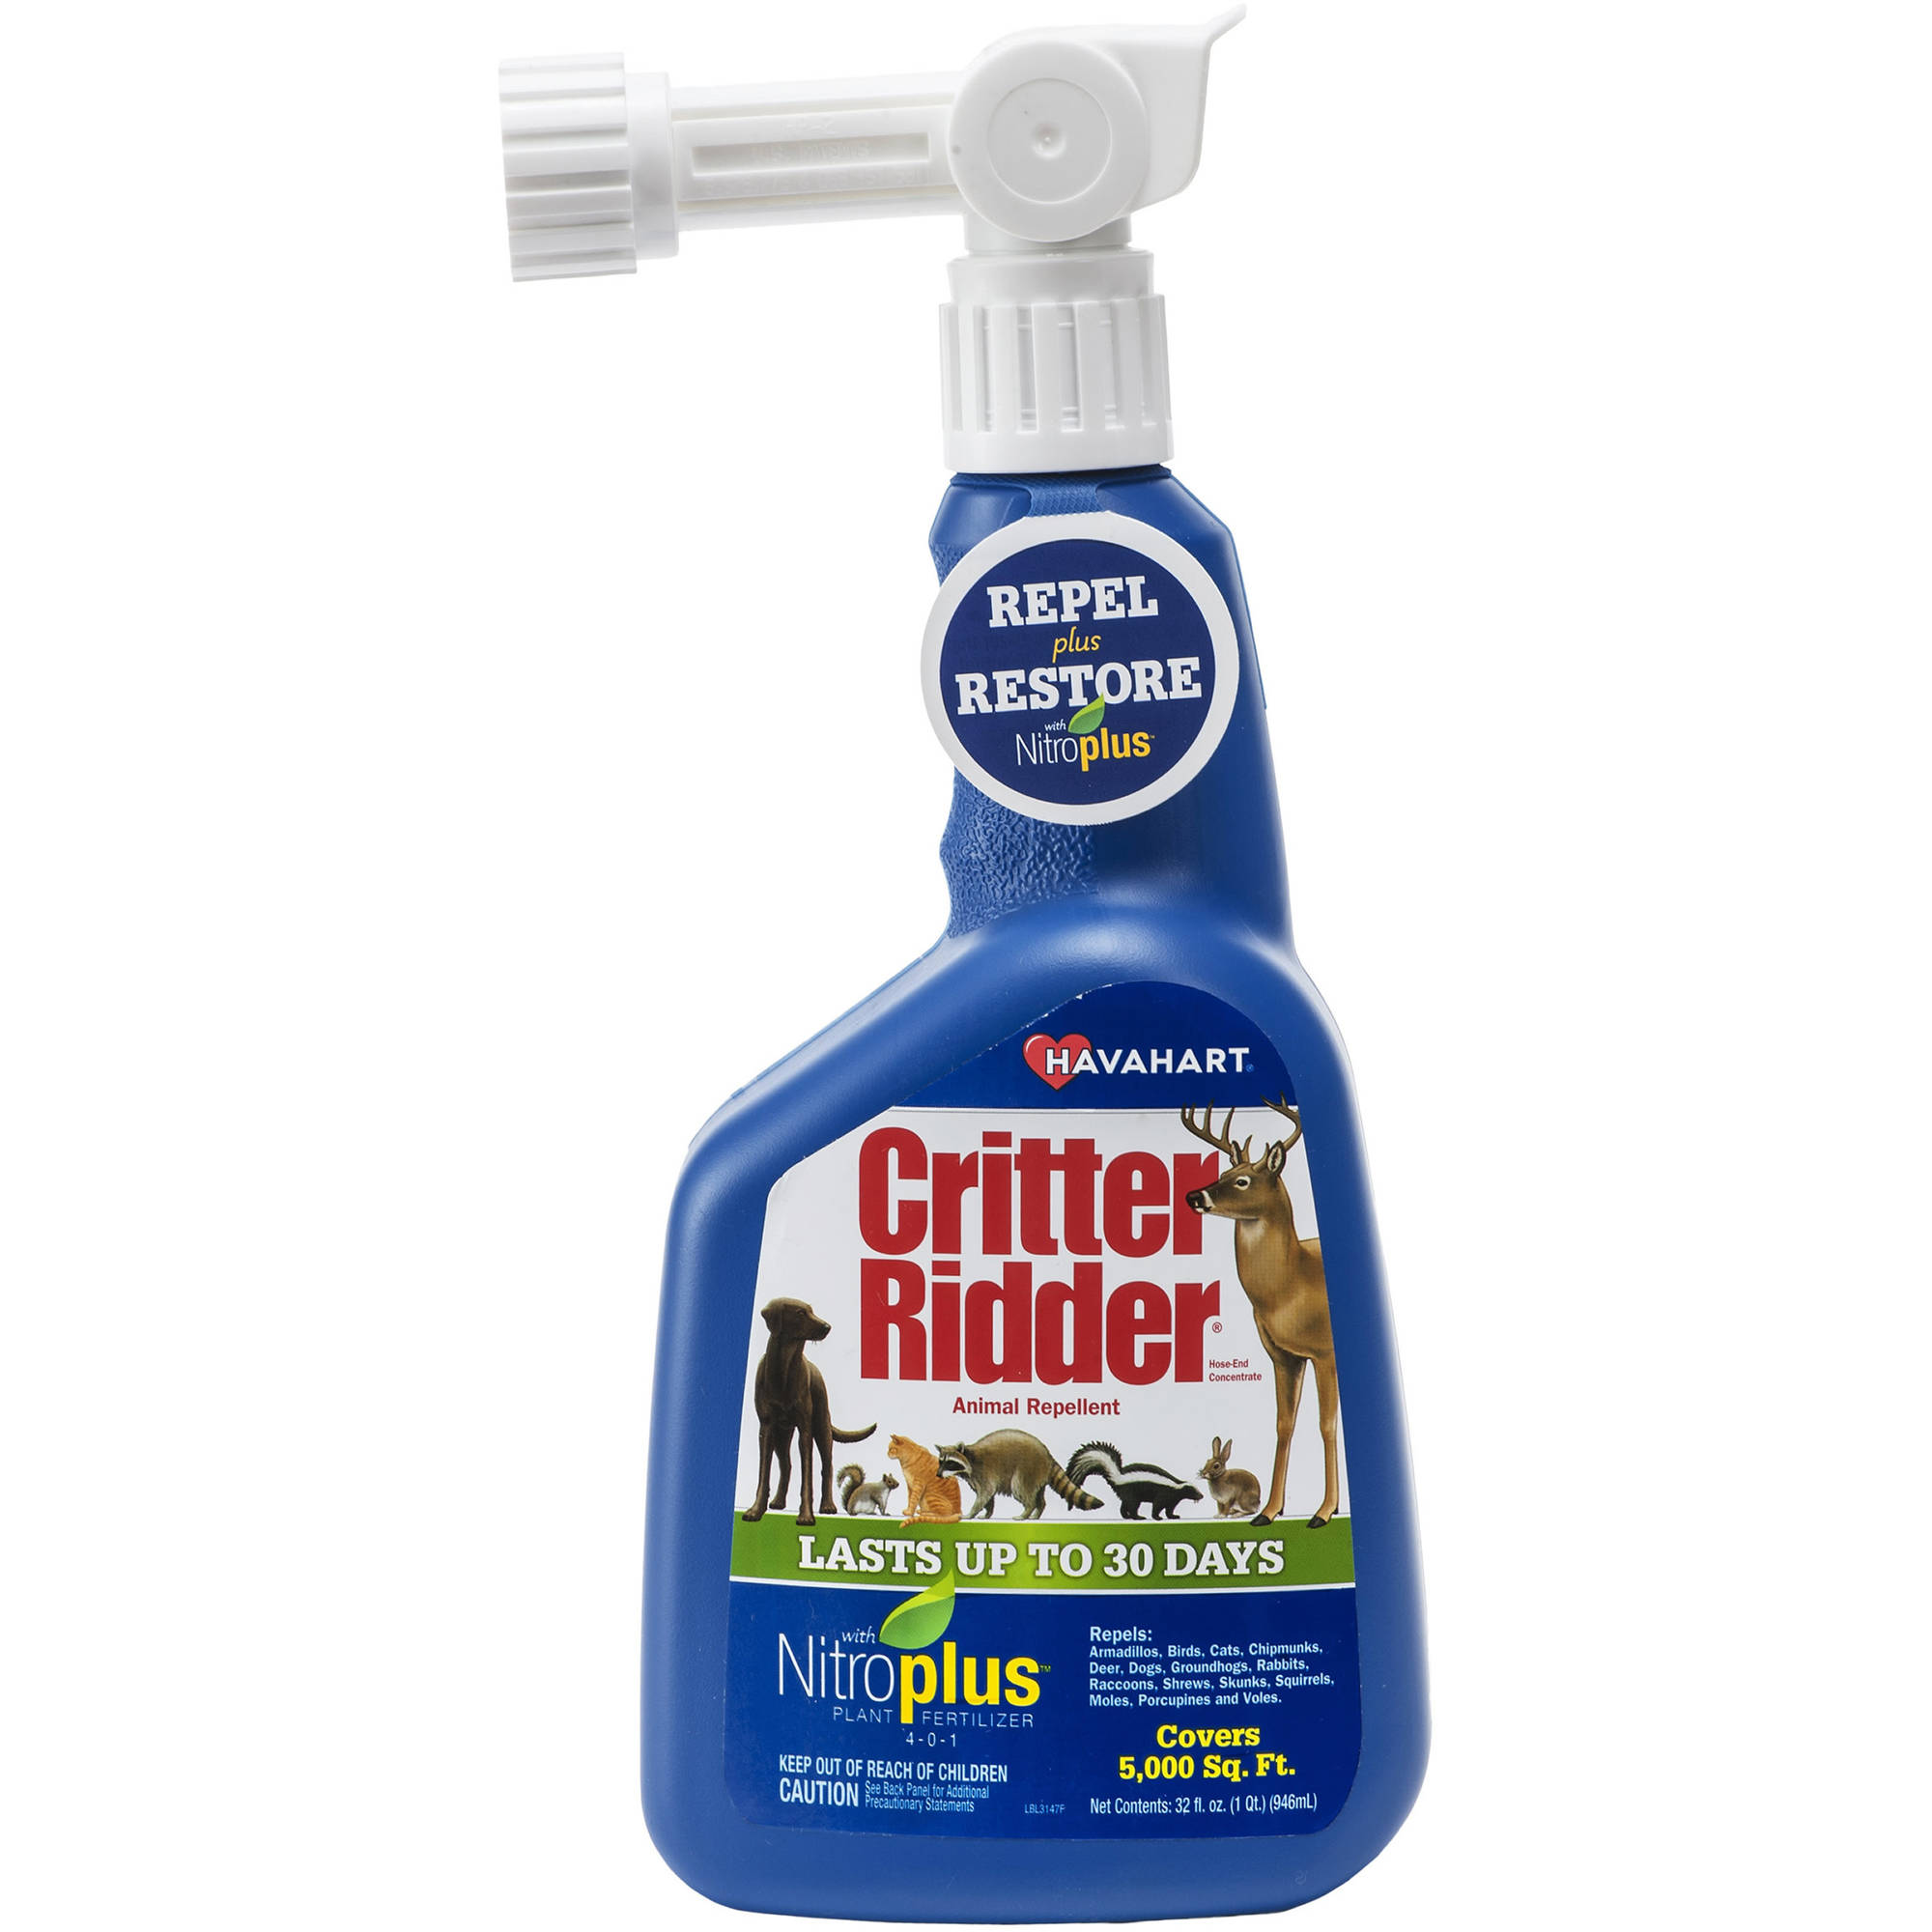 Havahart Critter Ridder 32 oz Animal Repellent with NitroPlus